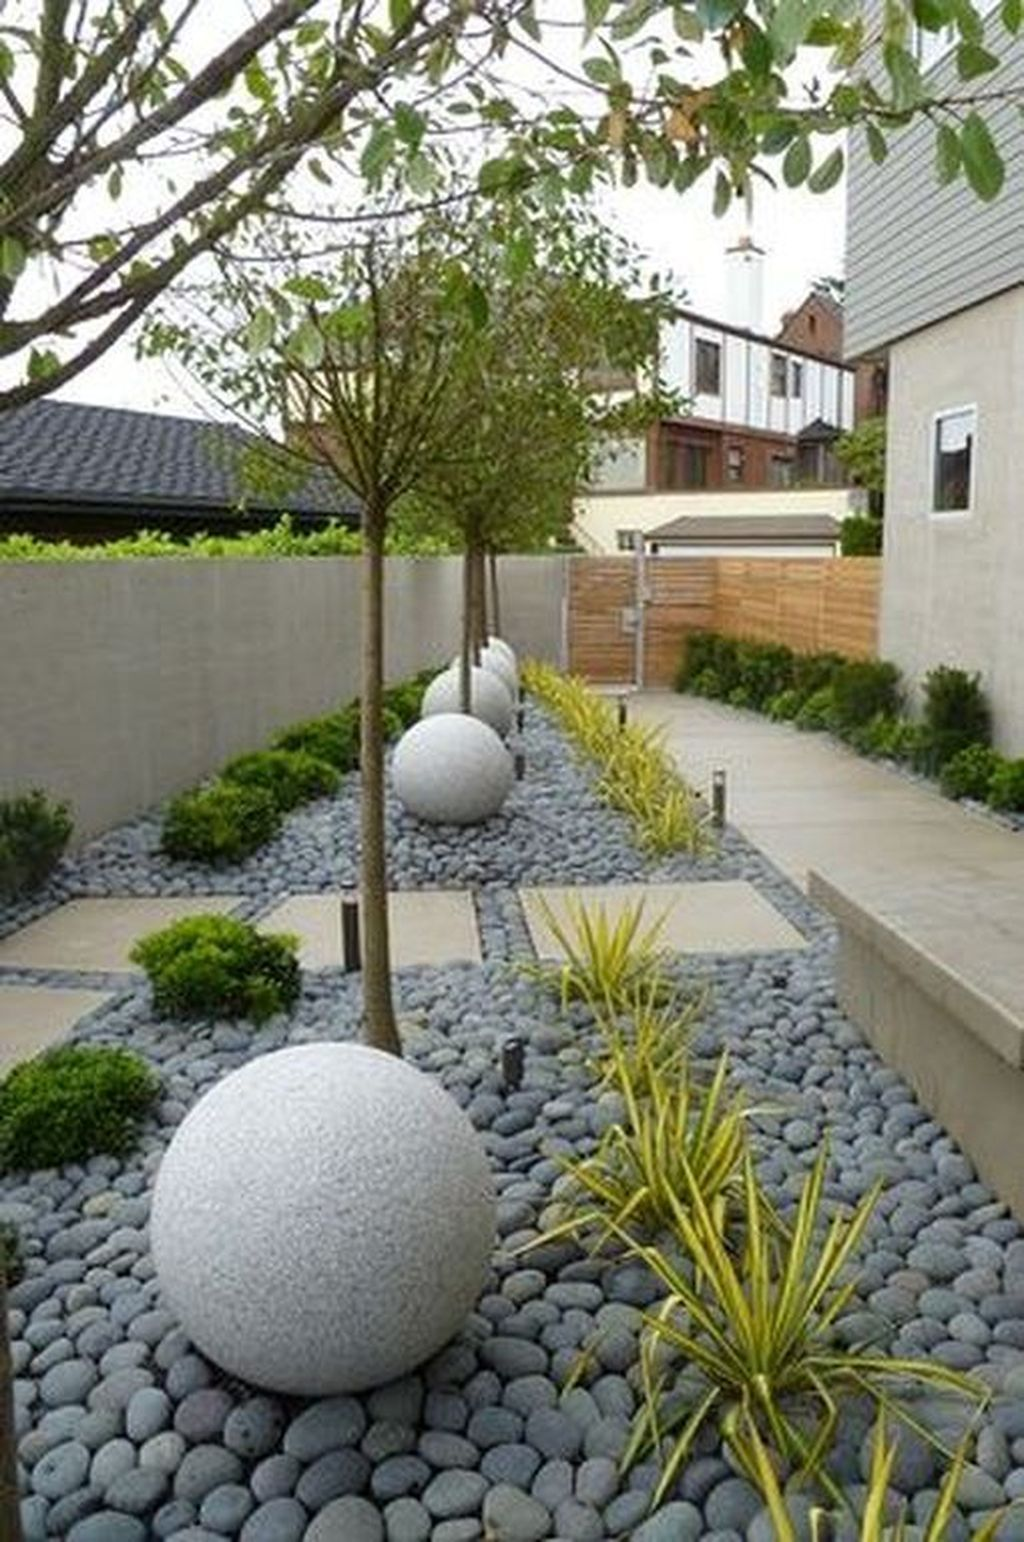 Landscaping A Must Look Image Number 6295140567 For A Jaw Dropping Garden Design Diylandscapingb Modern Landscaping Landscape Design Modern Landscape Design